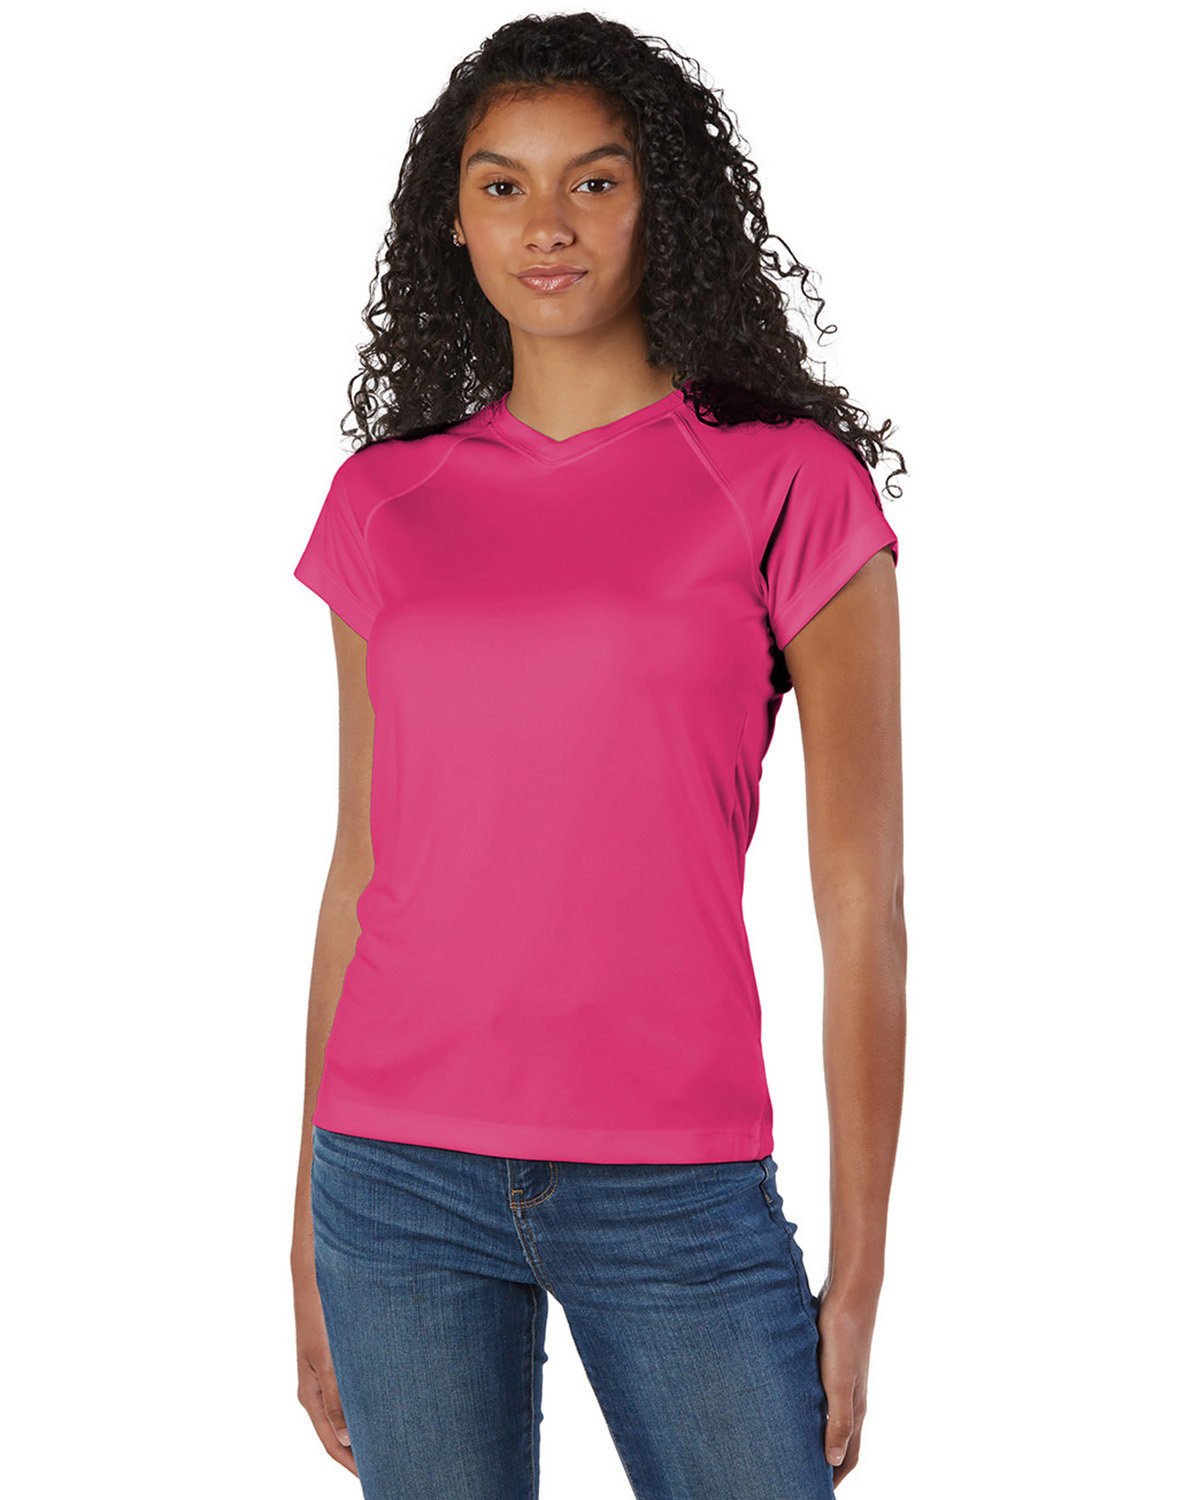 Champion Ladies' 4.1 oz. Double Dry® V-Neck T-Shirt WOW PINK